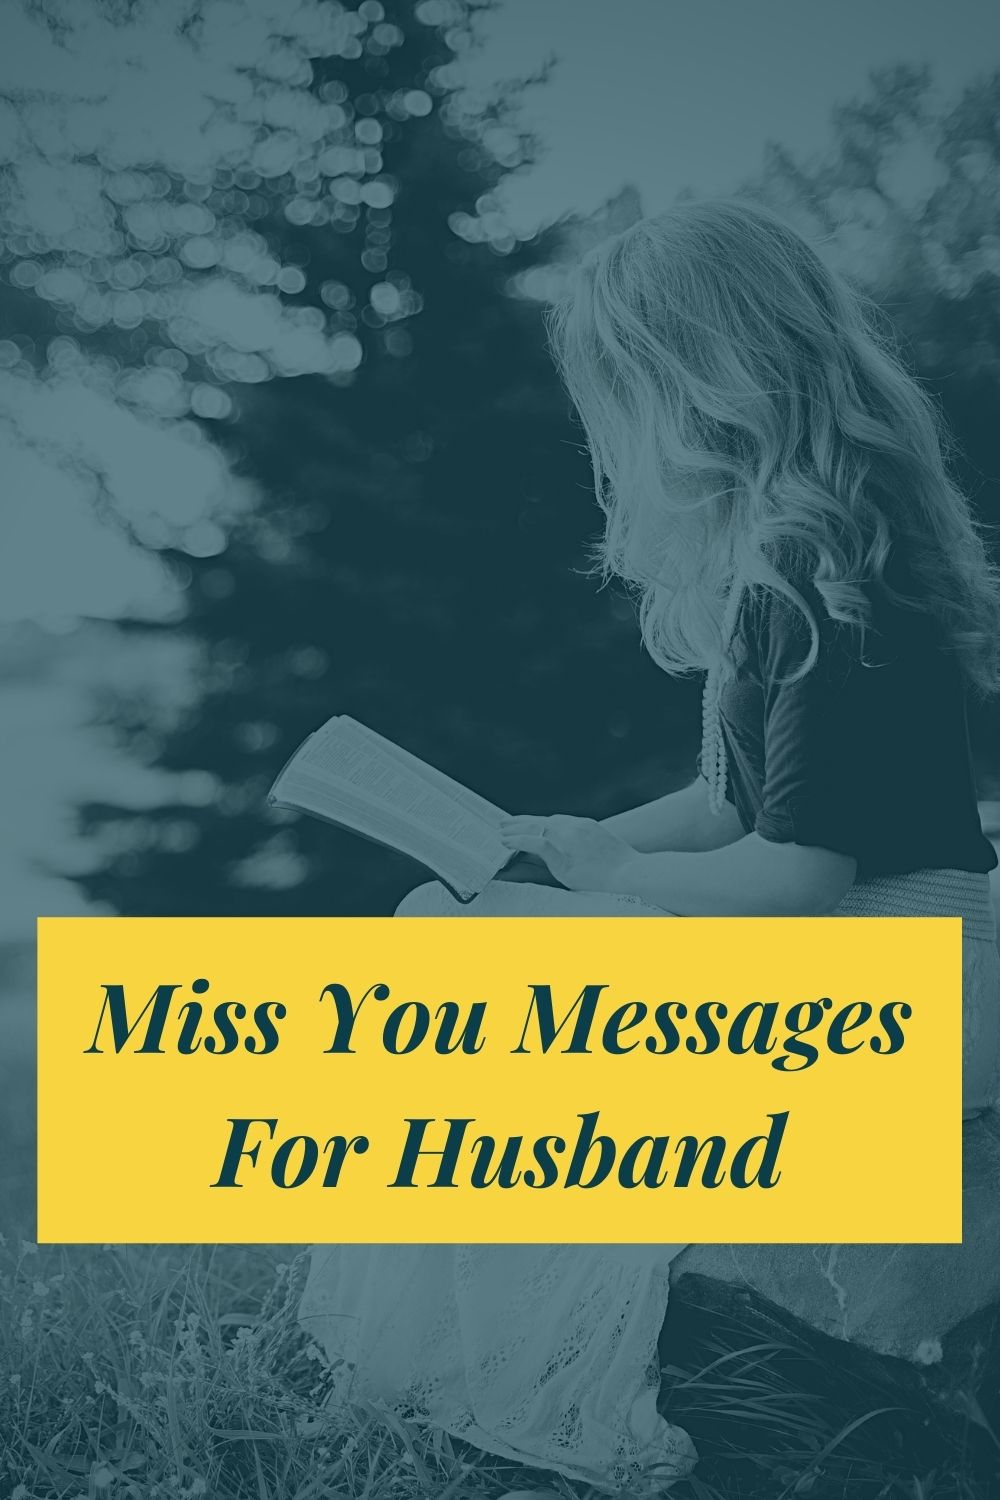 miss you messages for husband